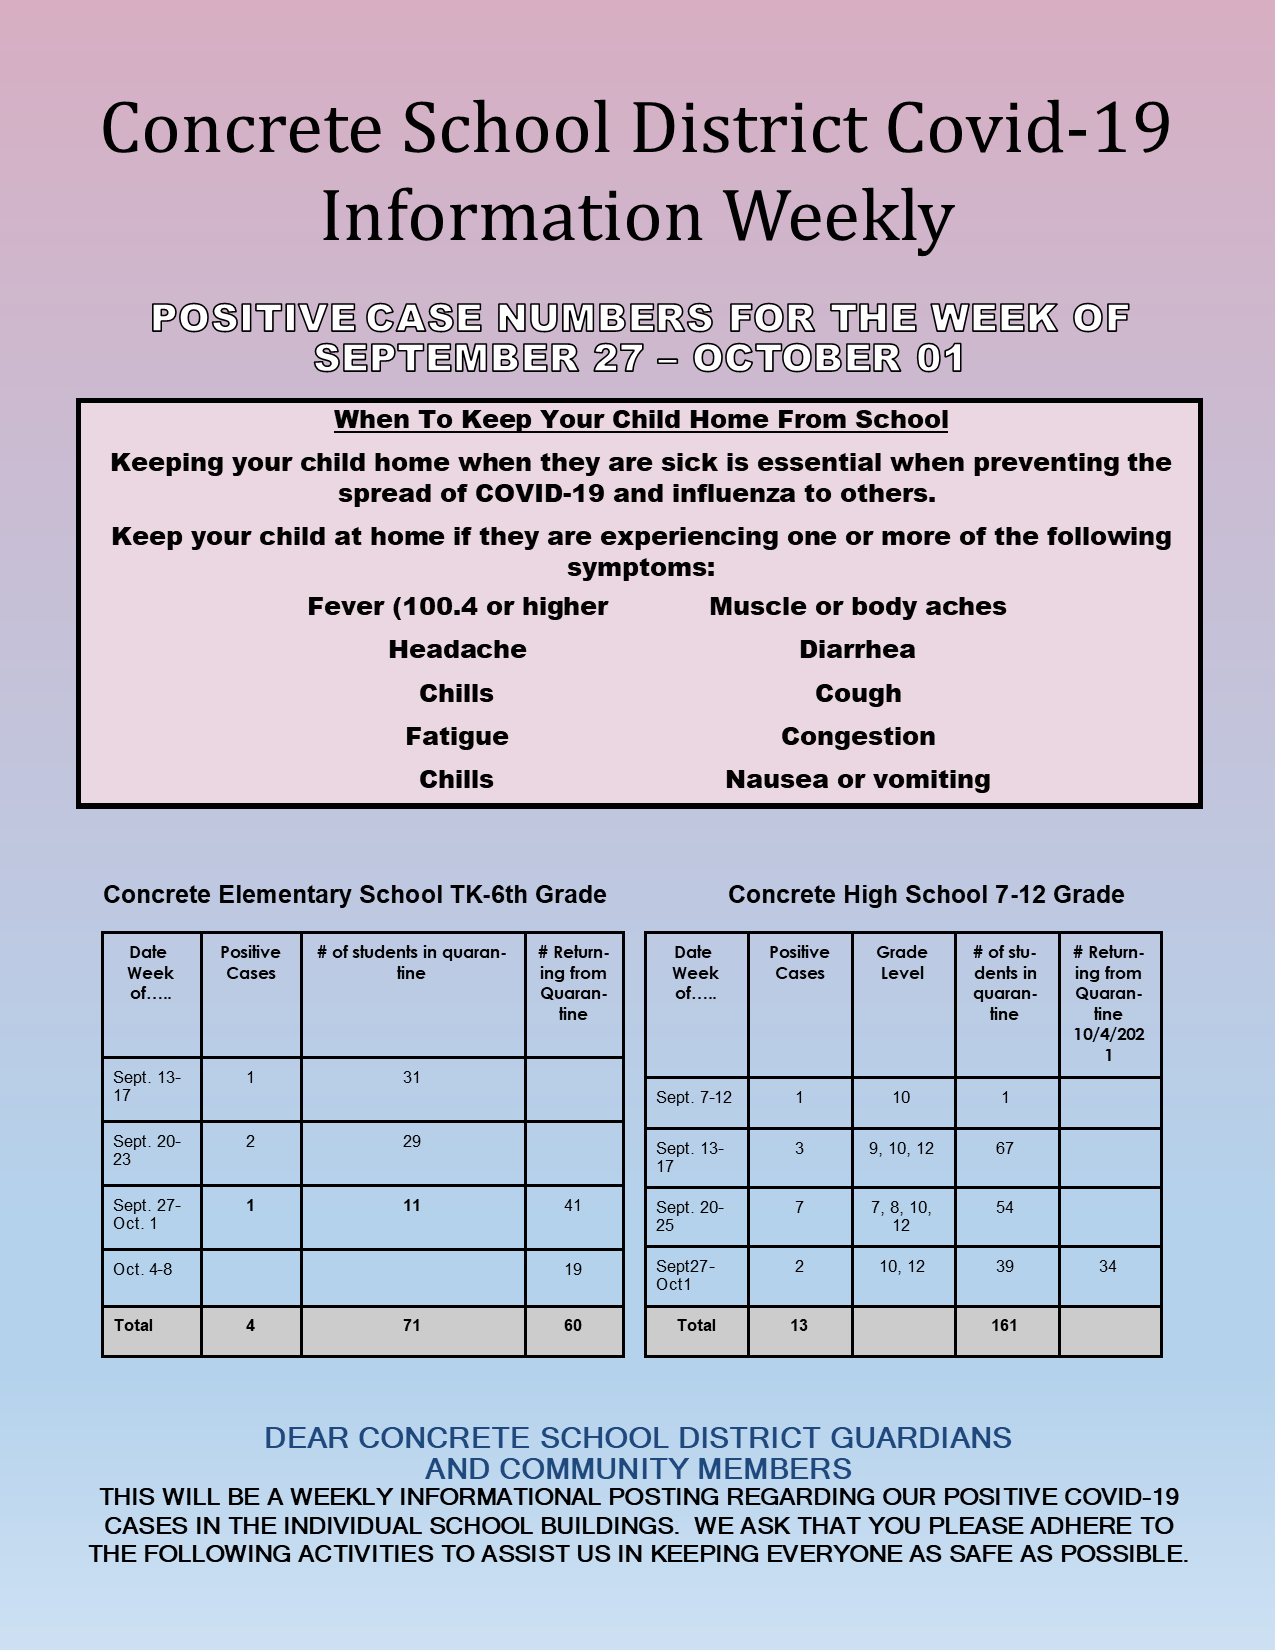 Concrete School District COVID-19 Information Weekly - Positive case numbers for the week of September 27 - October 1.